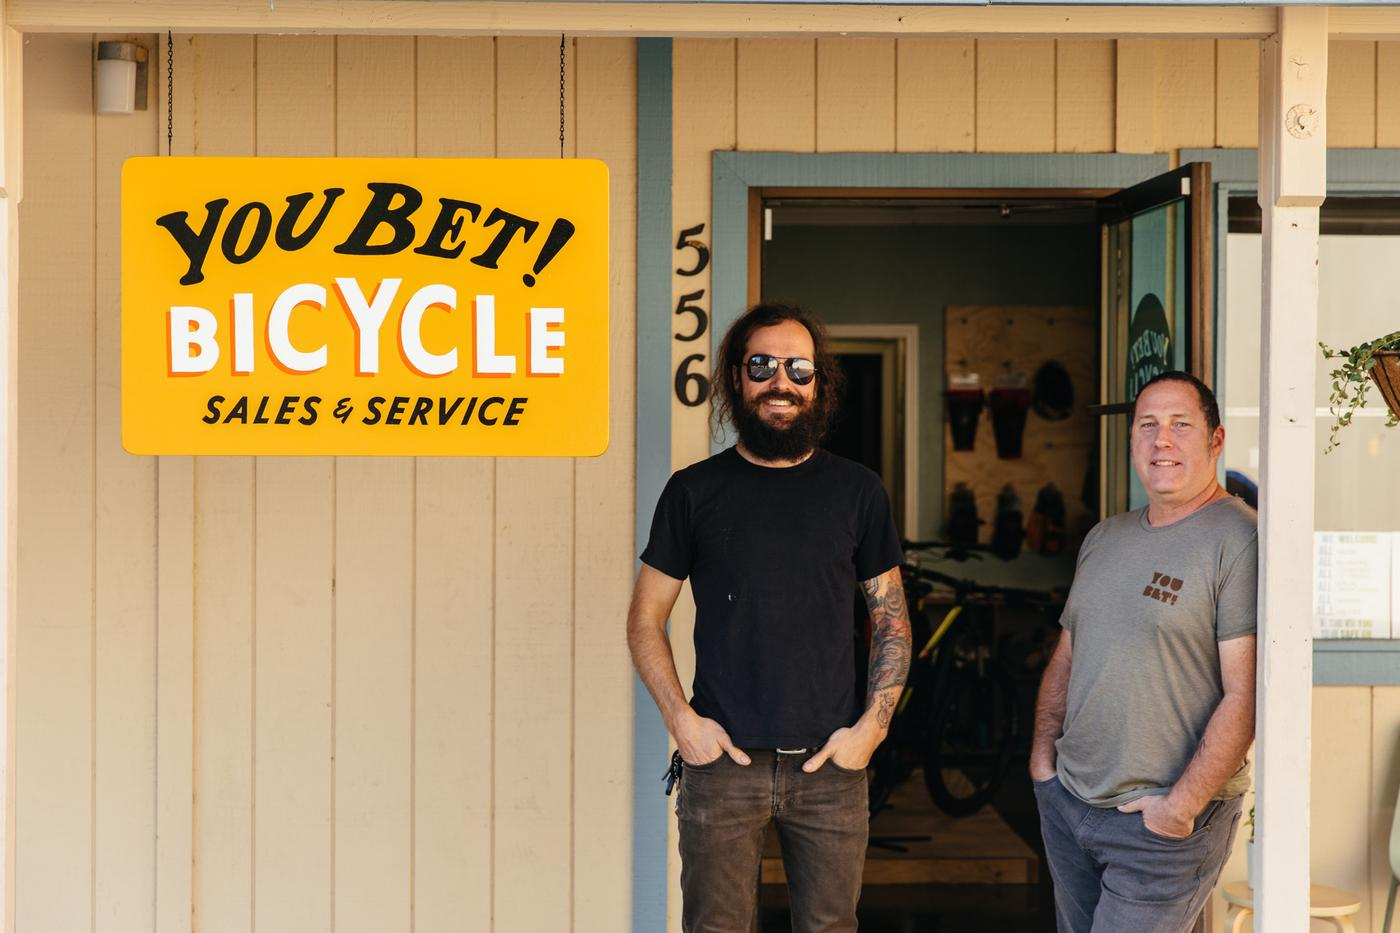 Nevada City's You Bet is the Gateway Bike Shop to the Lost Sierra